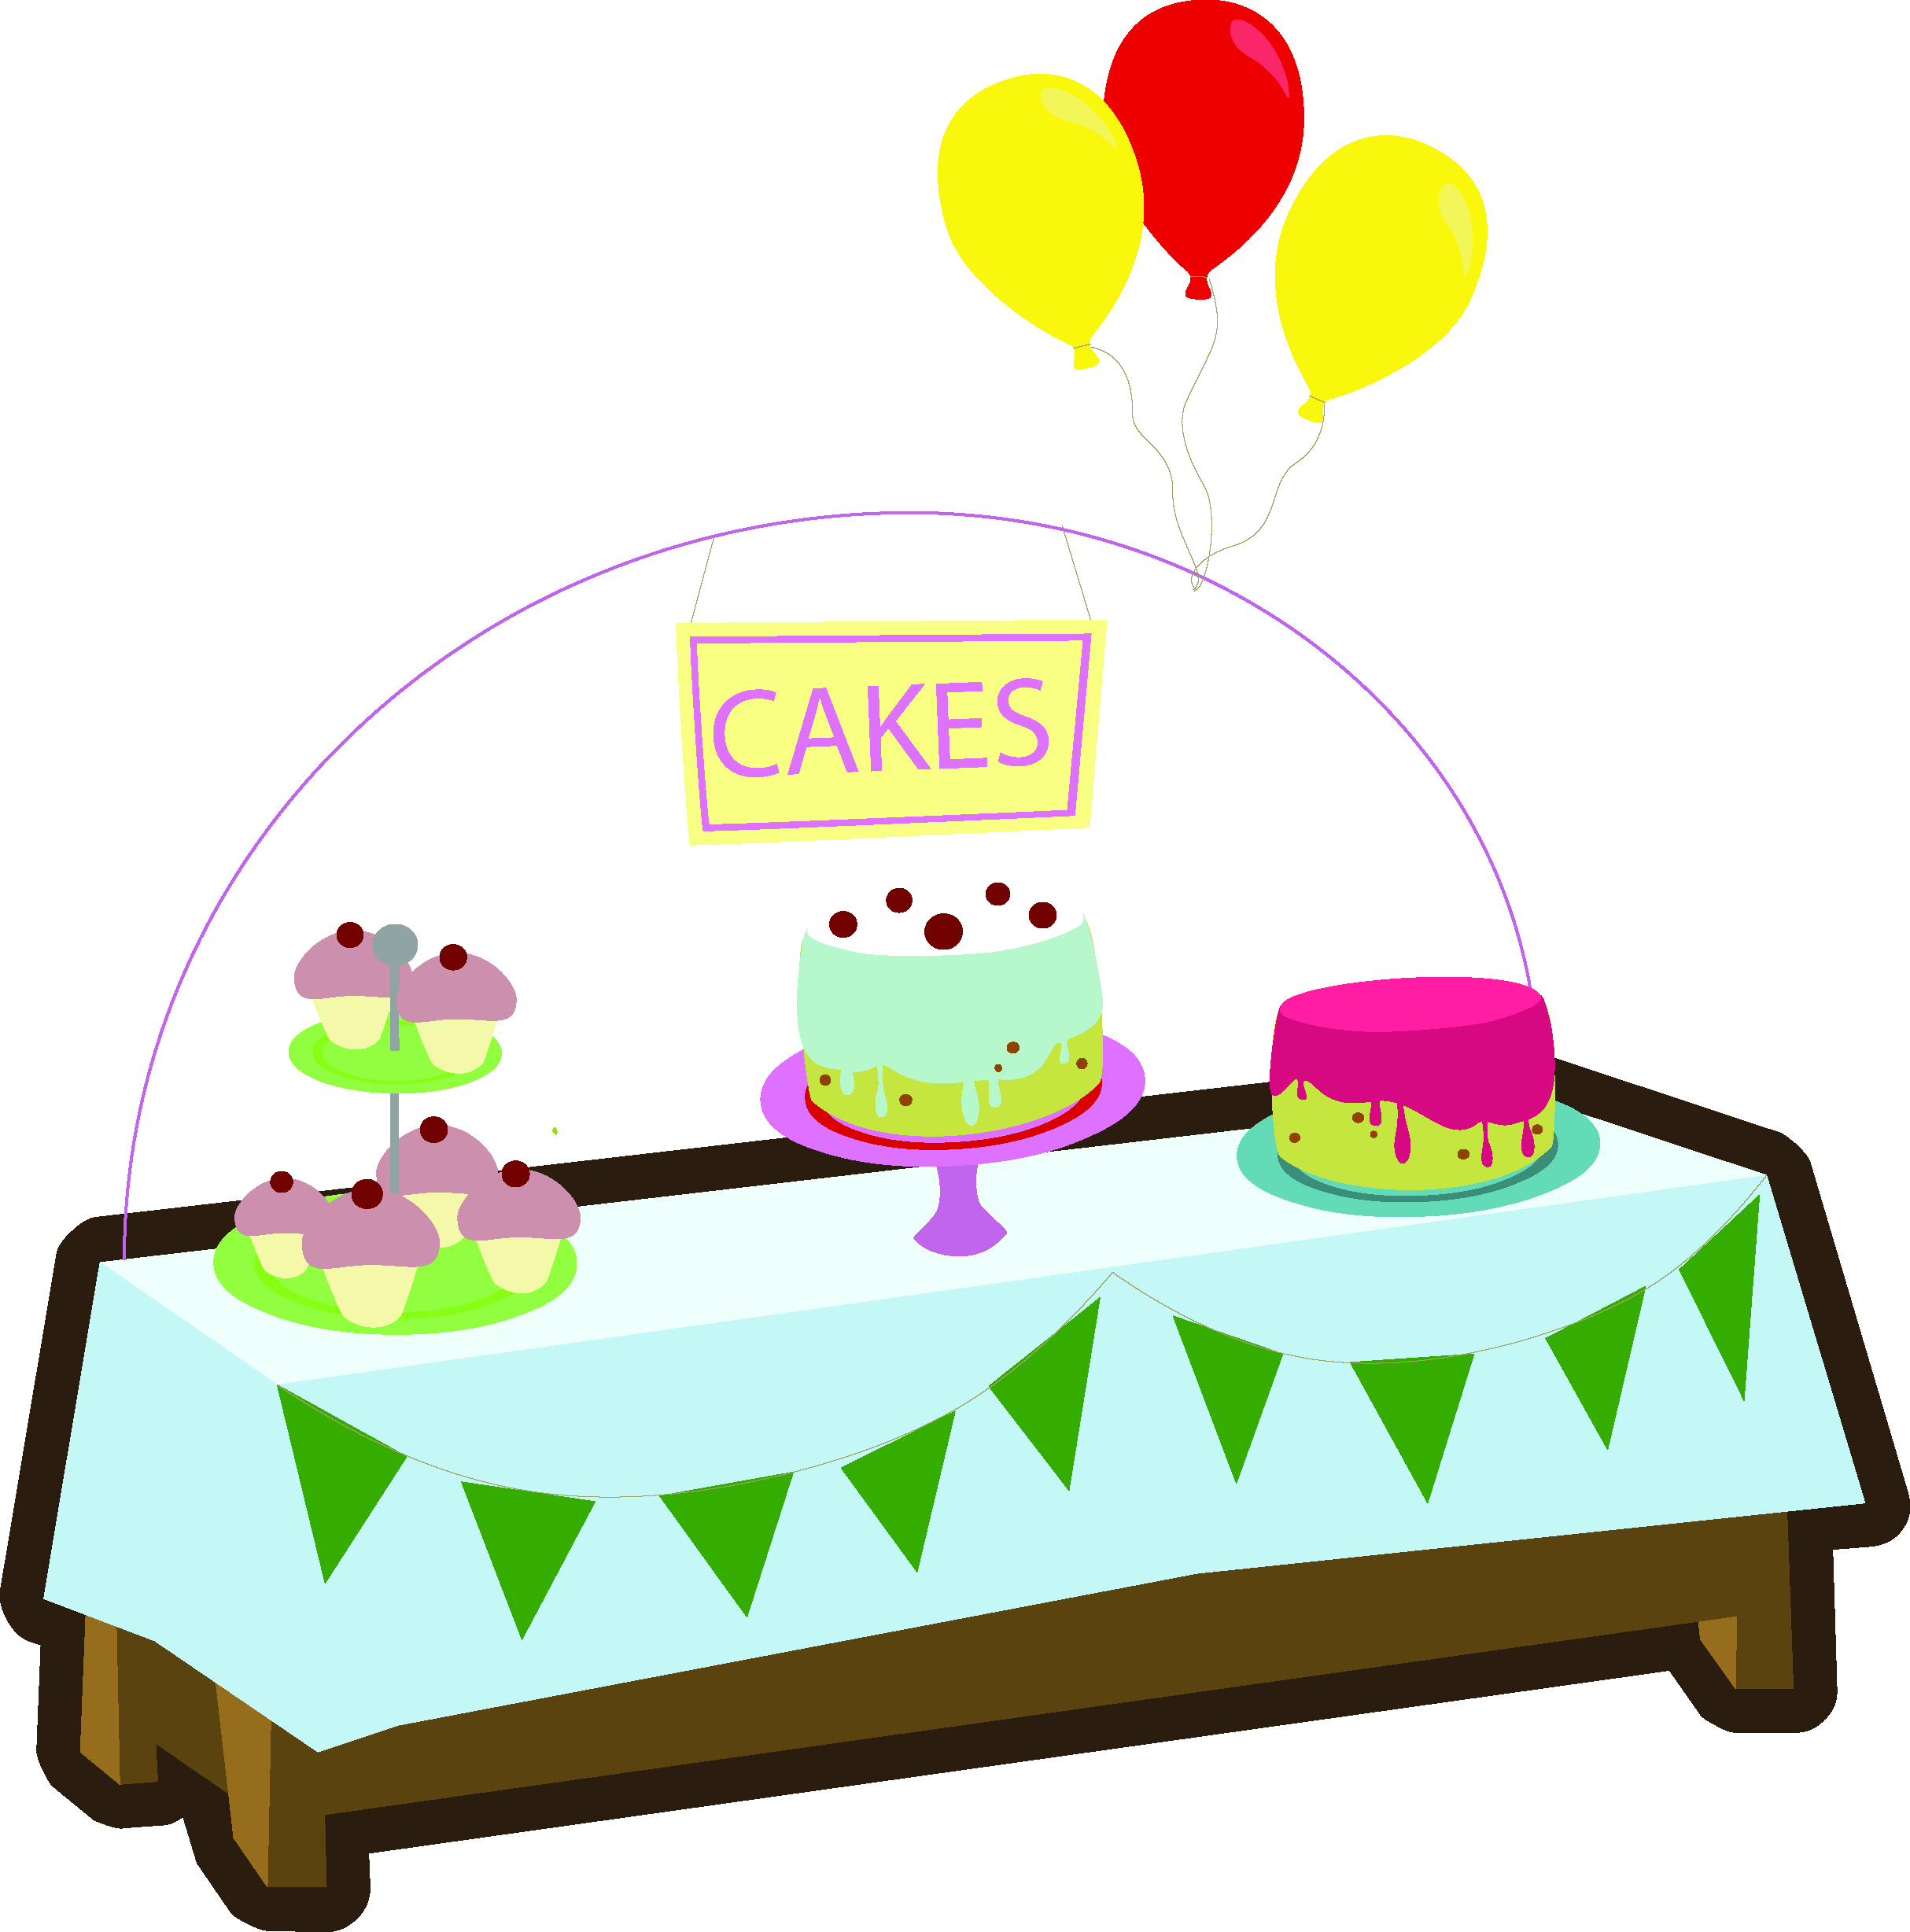 Baking clipart cake stall. Fete game graphics yellow